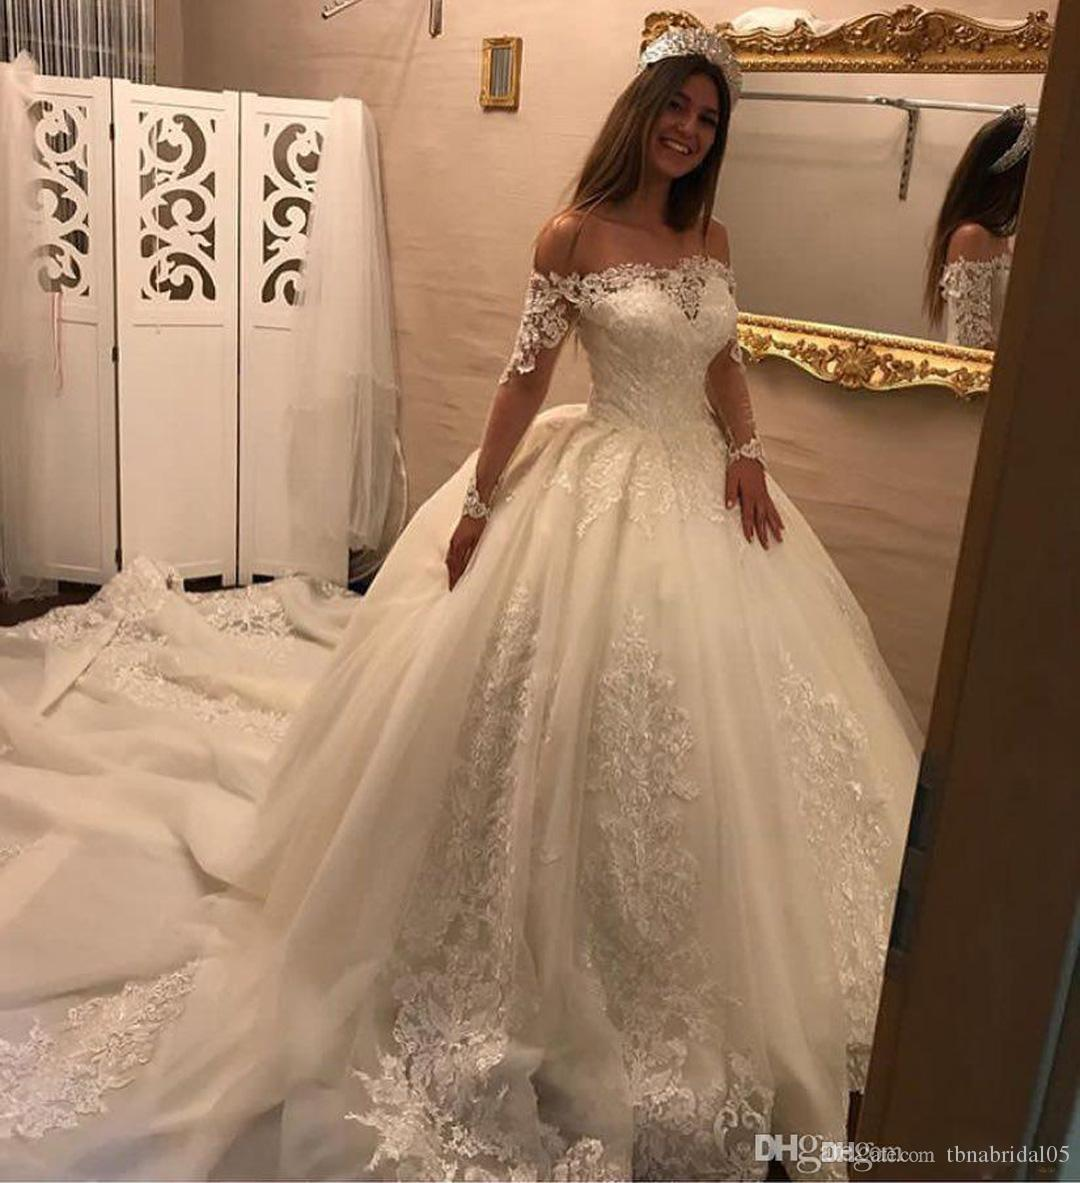 The Best Wedding Dress